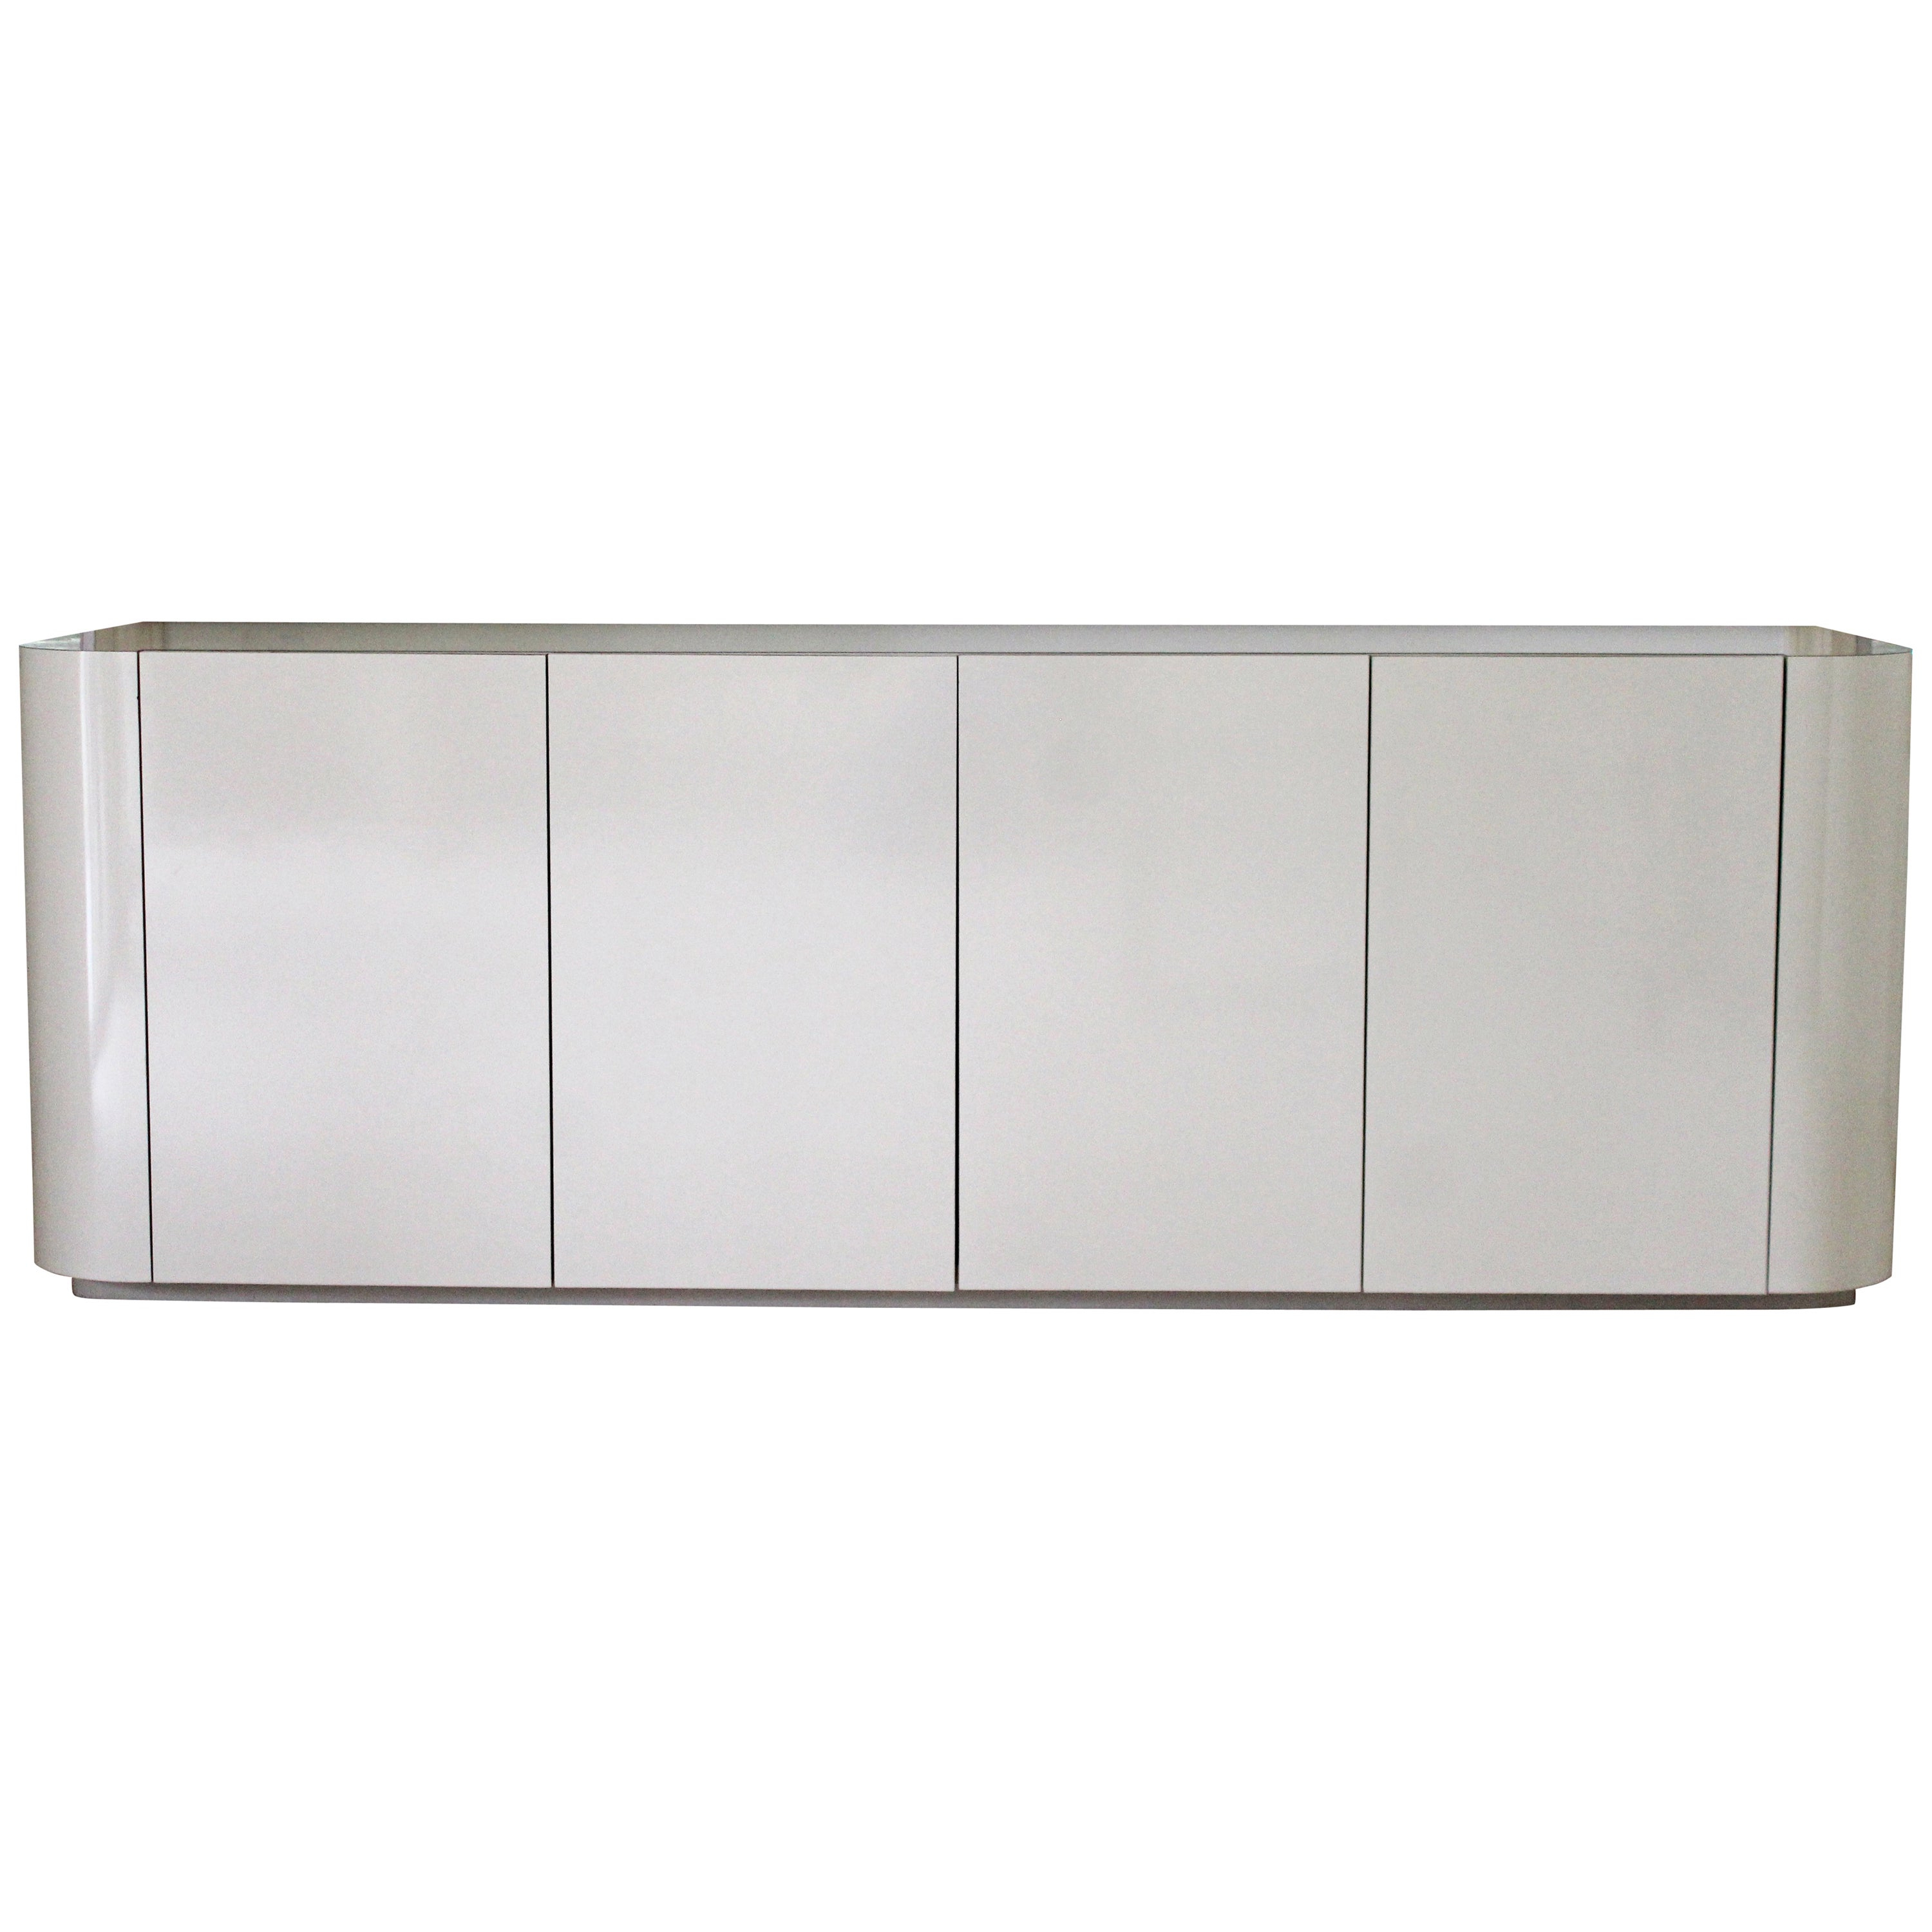 White Credenza Cabinet | Mail Cabinet For Abhinav Credenzas (View 19 of 20)